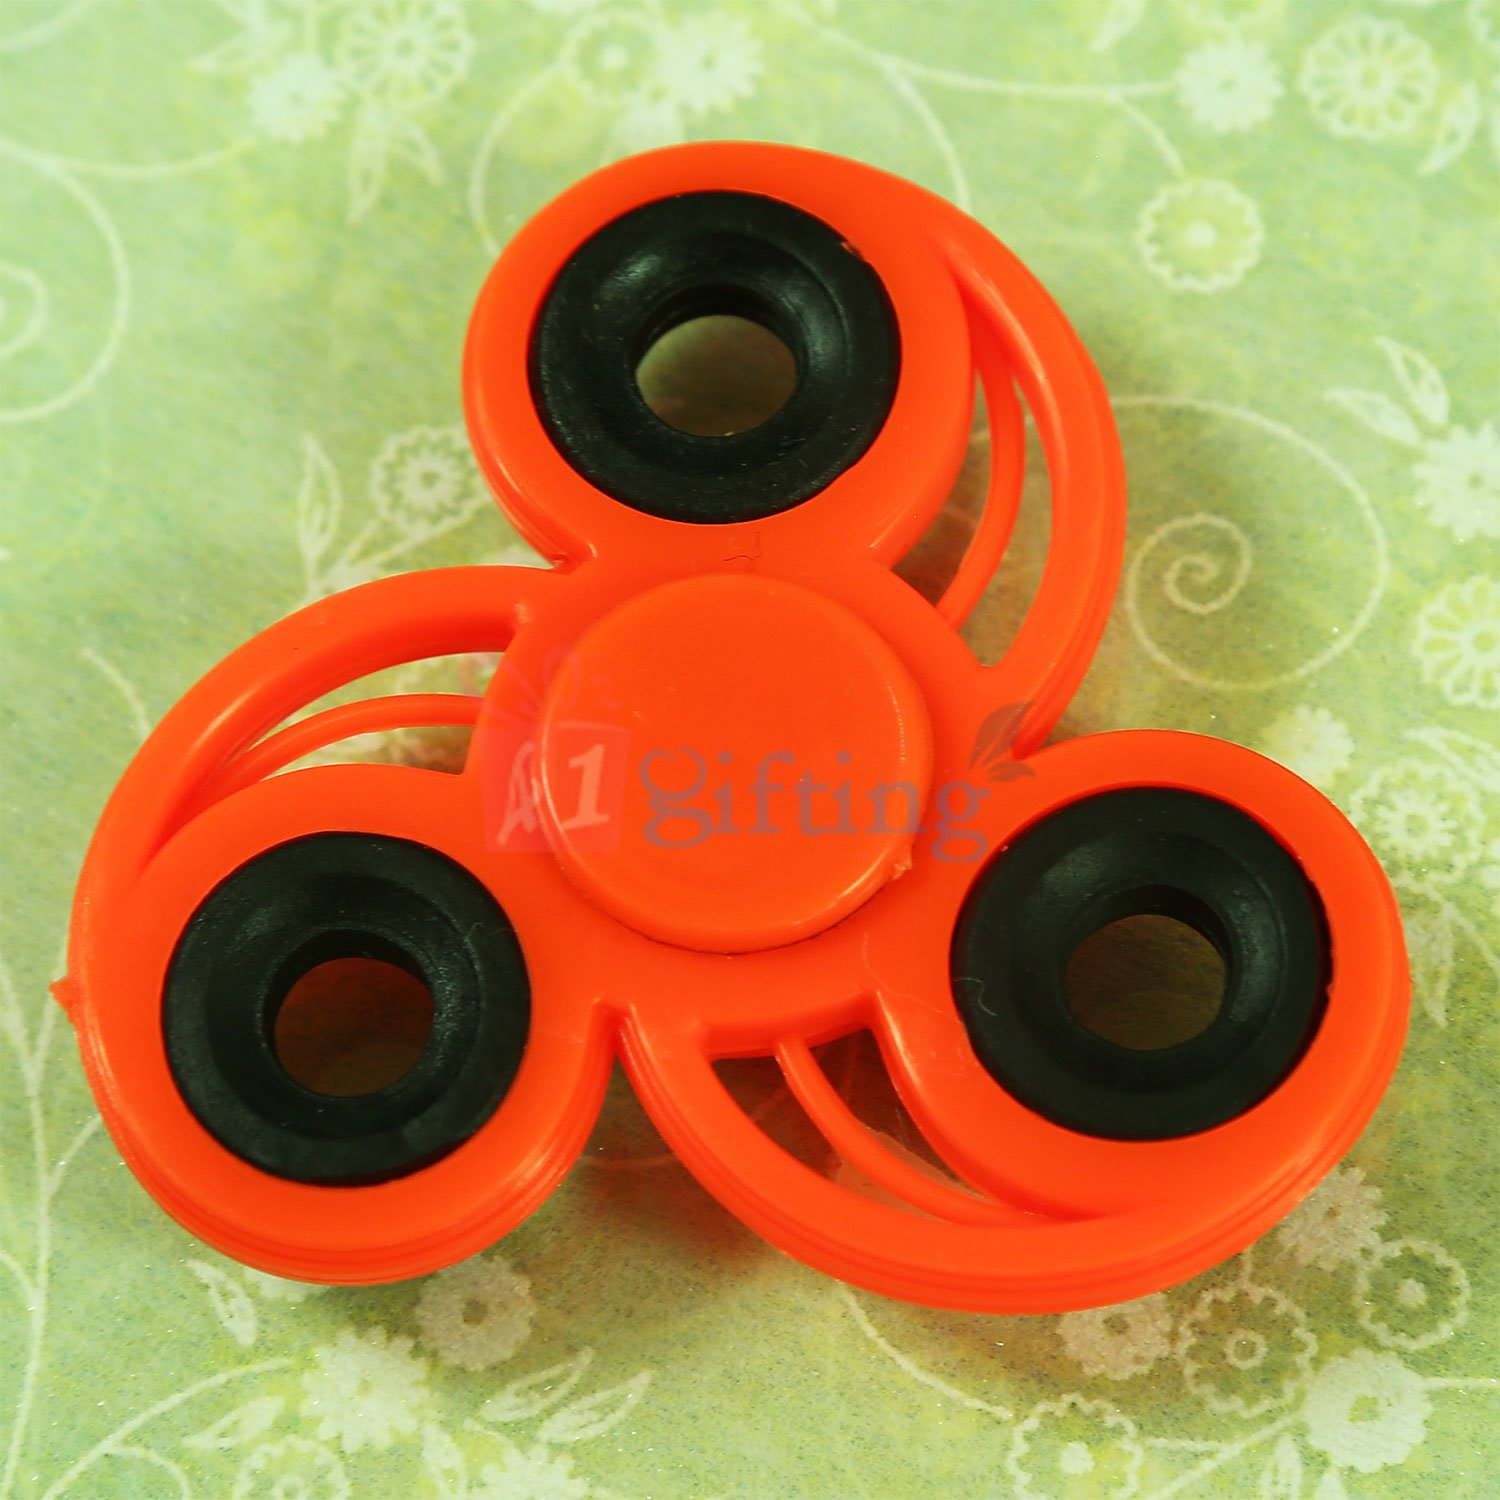 Spirale Theme Superb Spinner for Kids